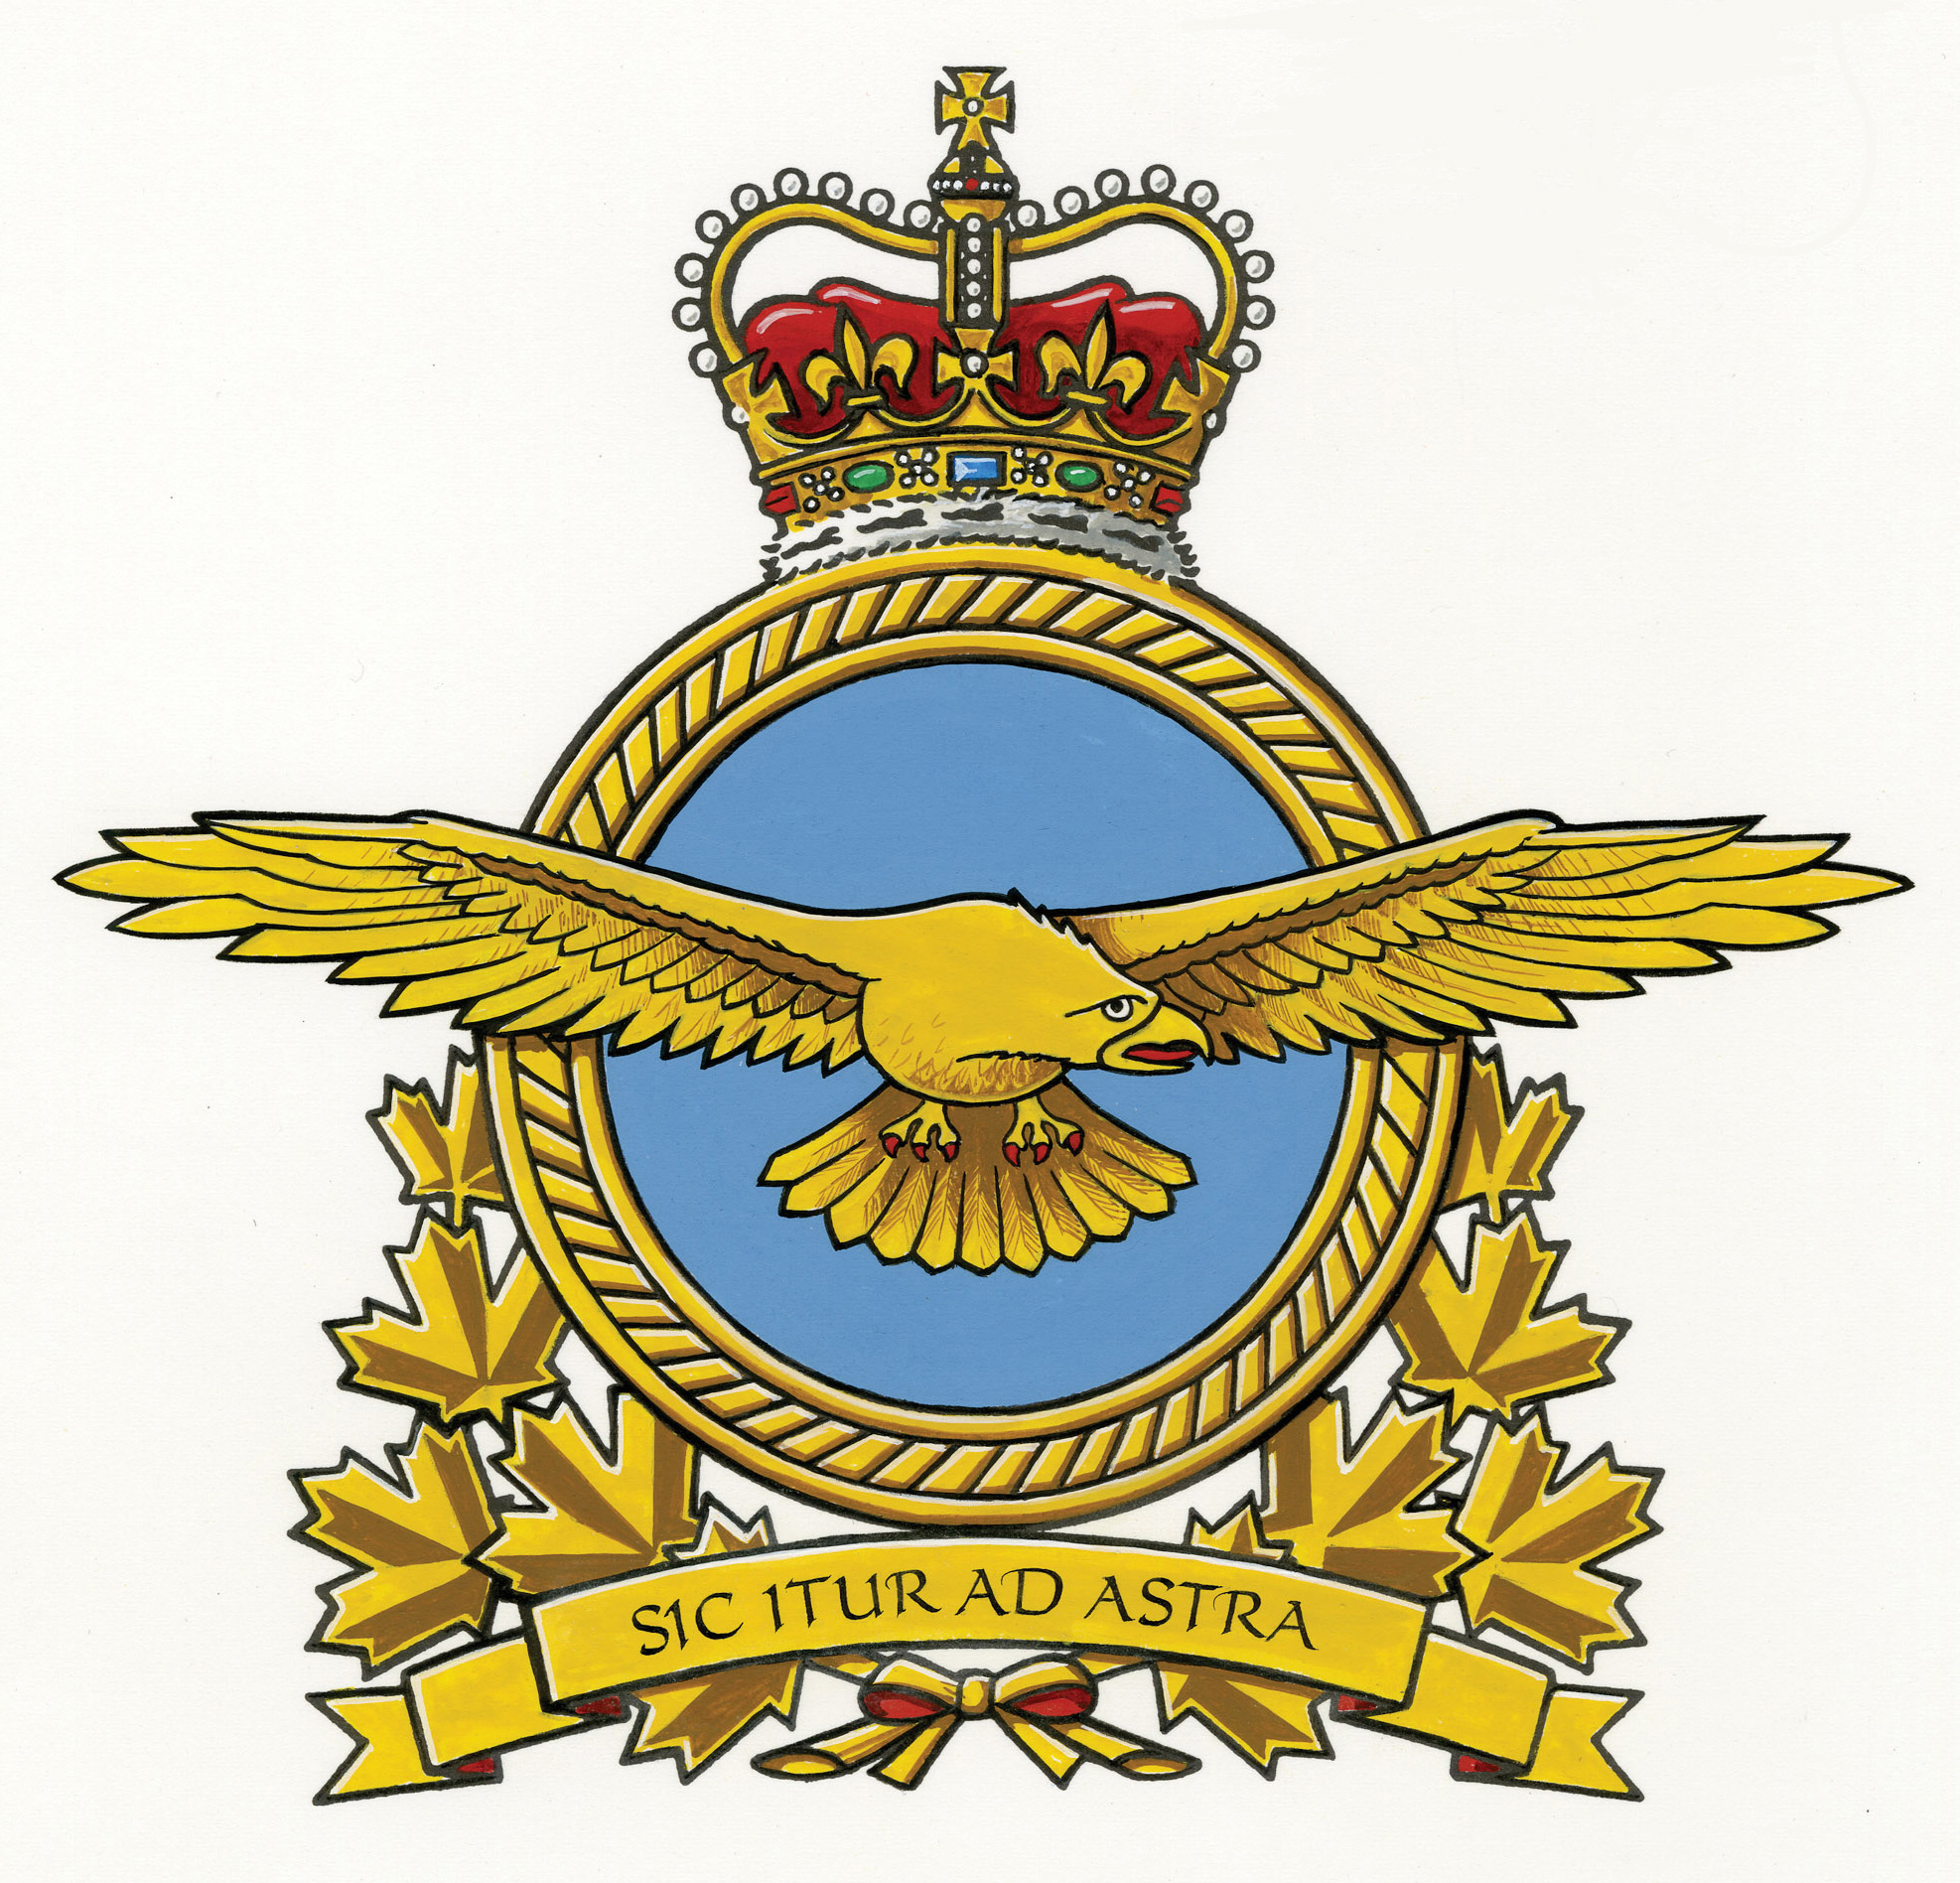 L'insigne de l'Aviation royale canadienne